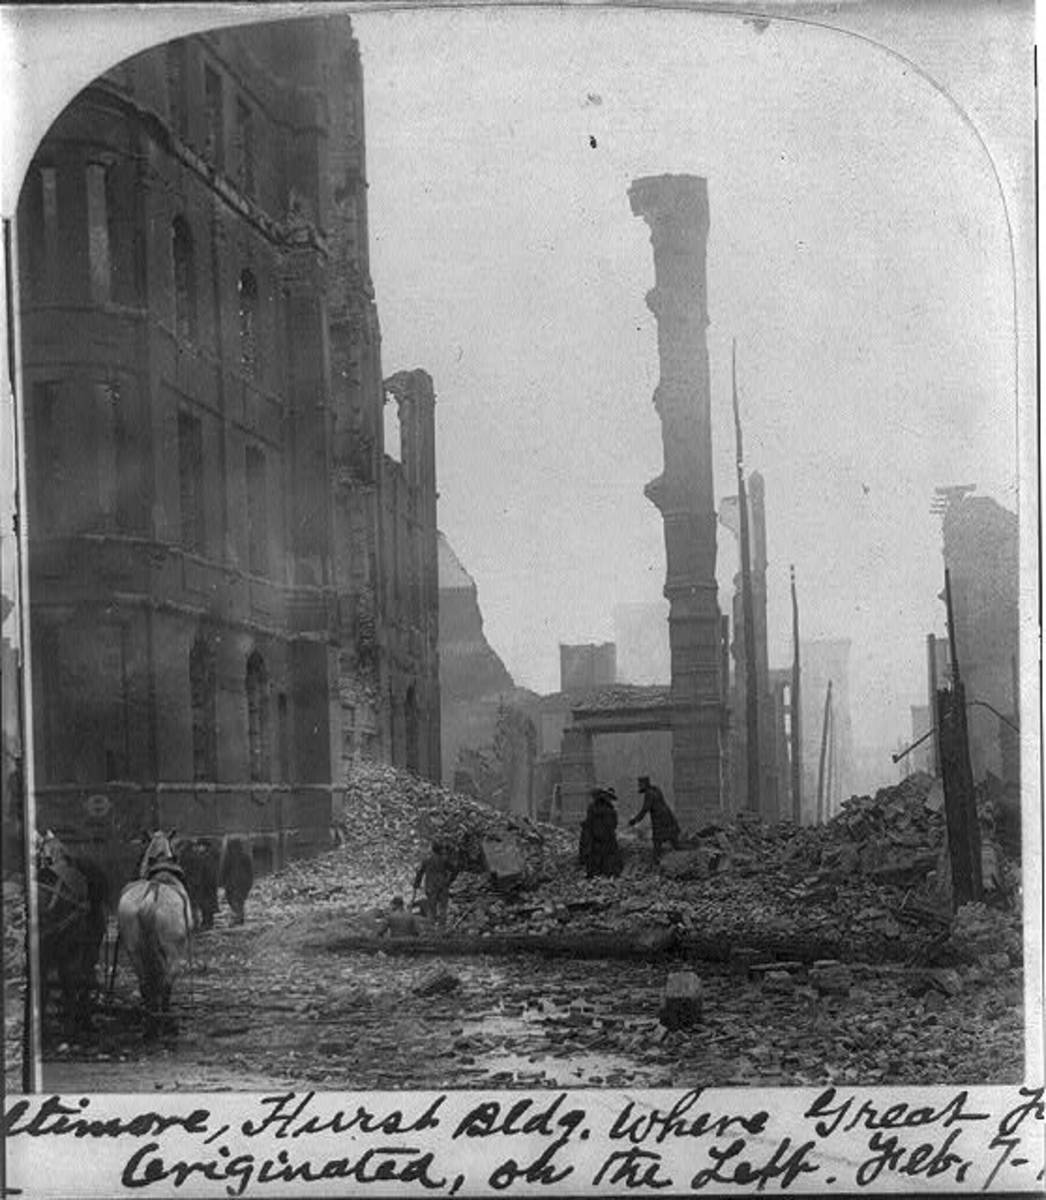 baltimores-great-fire-of-1904-and-its-legacy